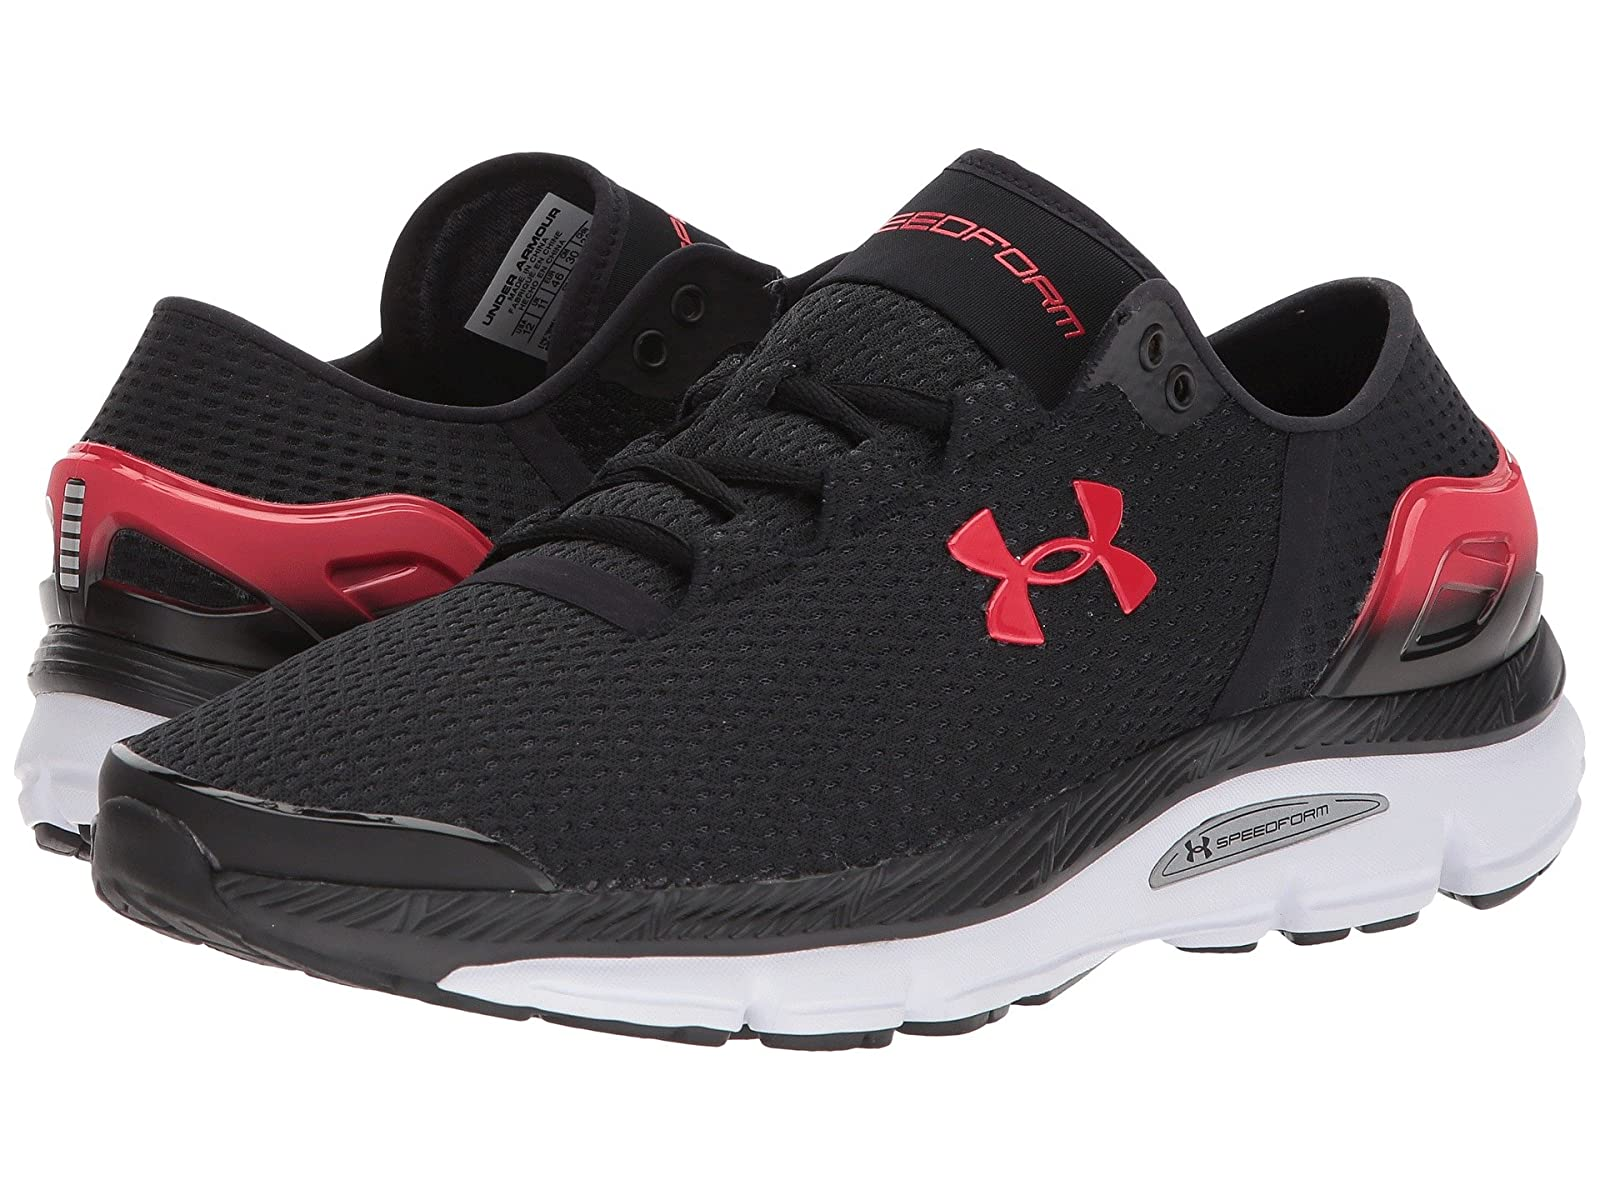 Under Armour UA Speedform Intake 2Cheap and distinctive eye-catching shoes